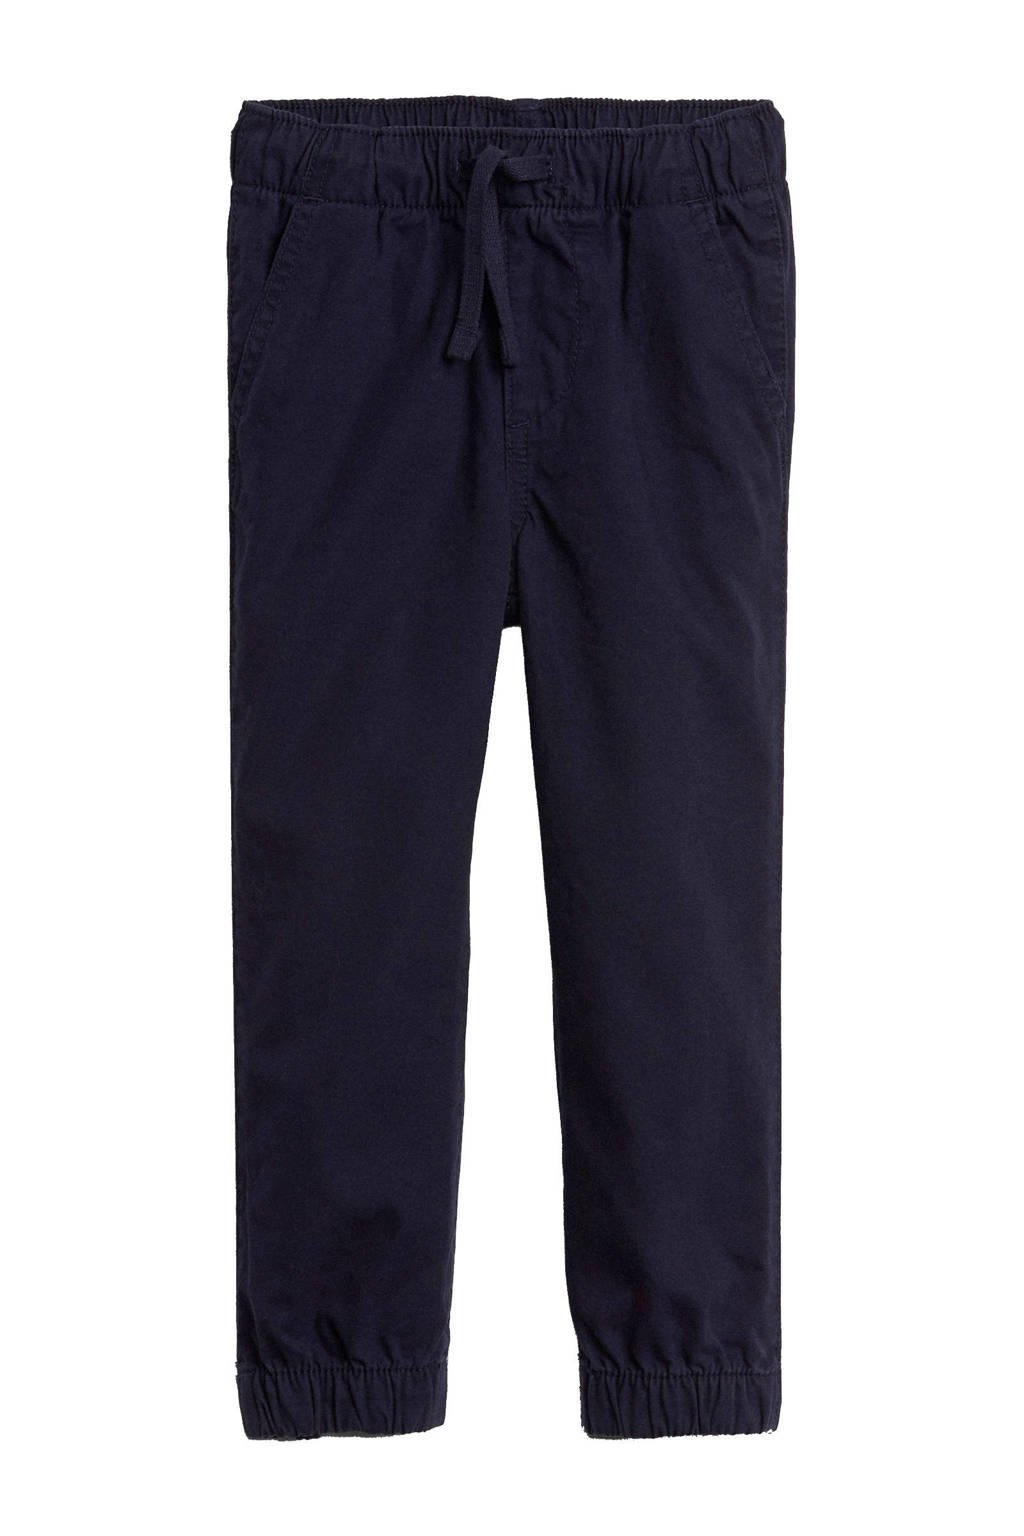 GAP tapered fit broek donkerblauw, Donkerblauw